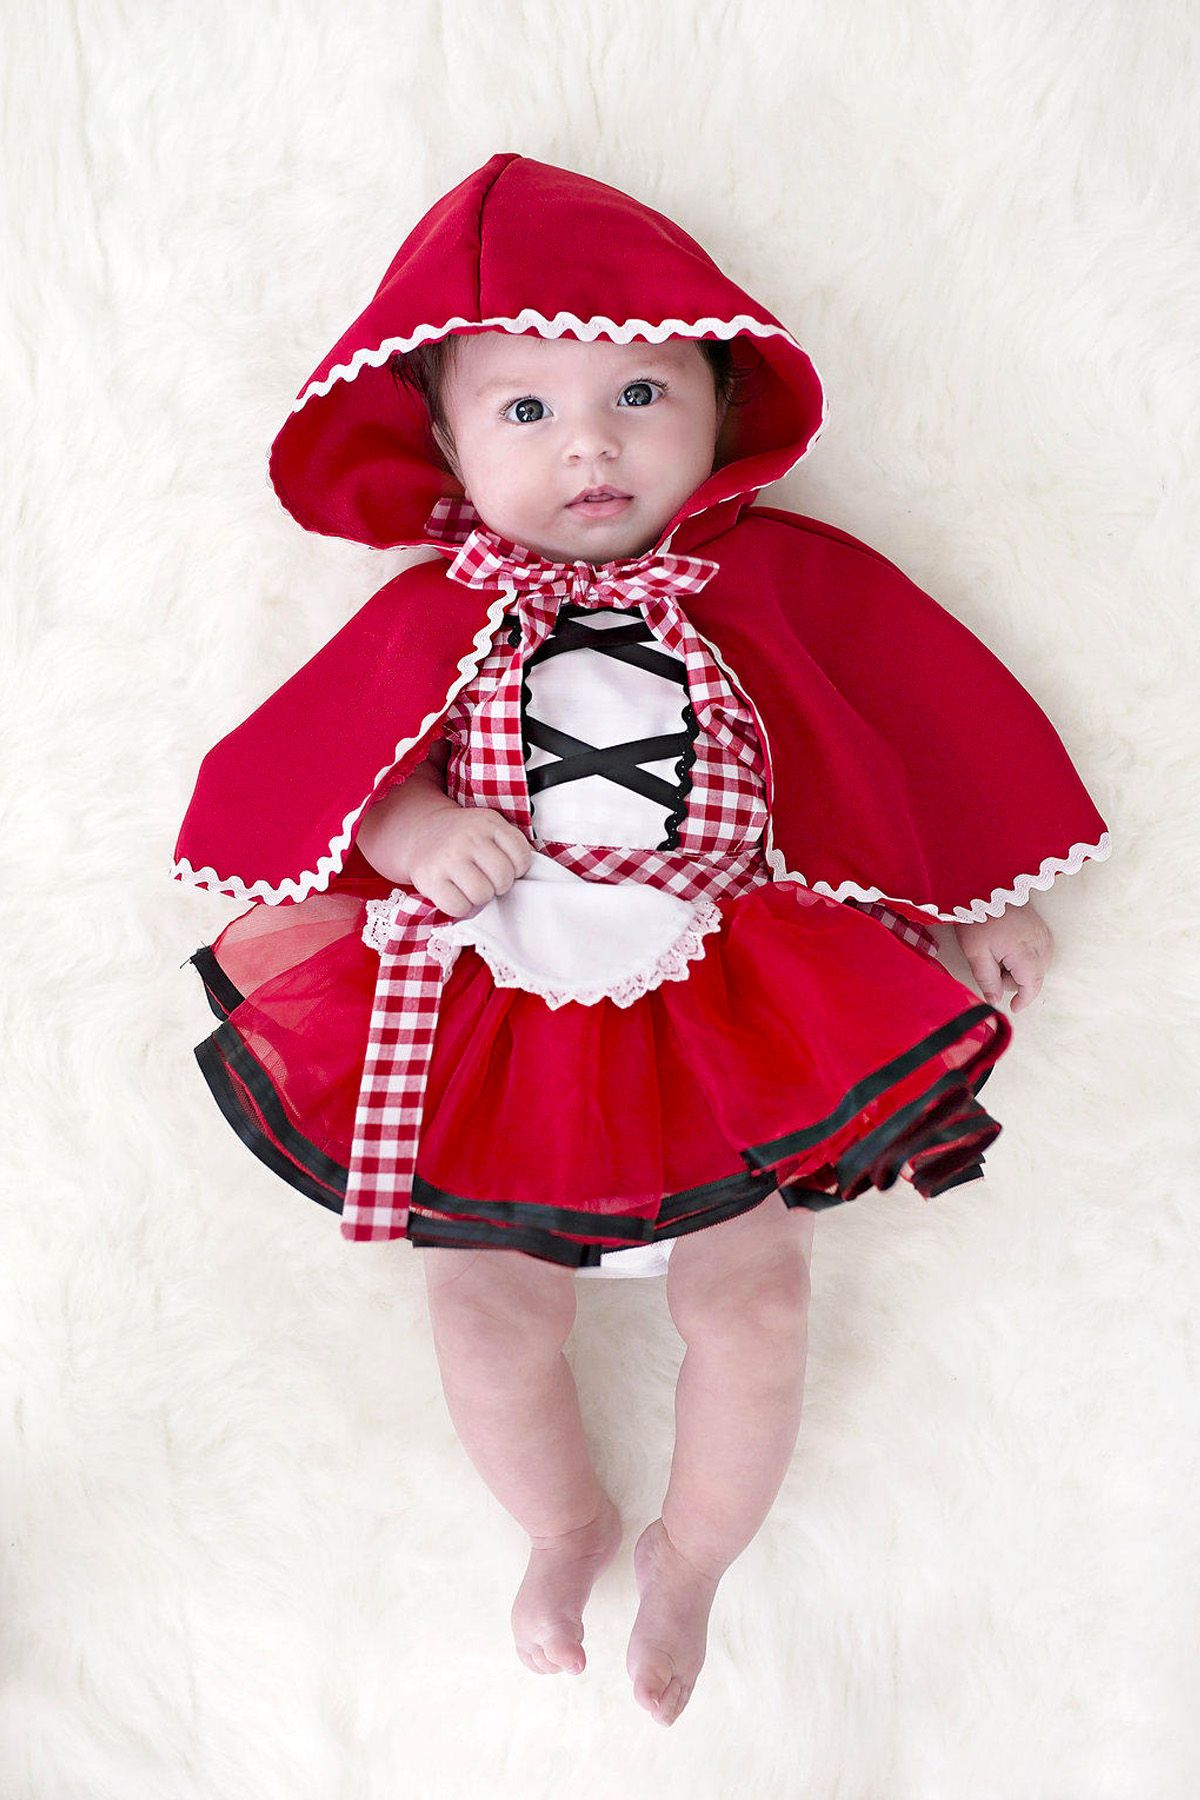 27 Cute Baby Halloween Costumes 2018 Best Ideas For Boy Girl